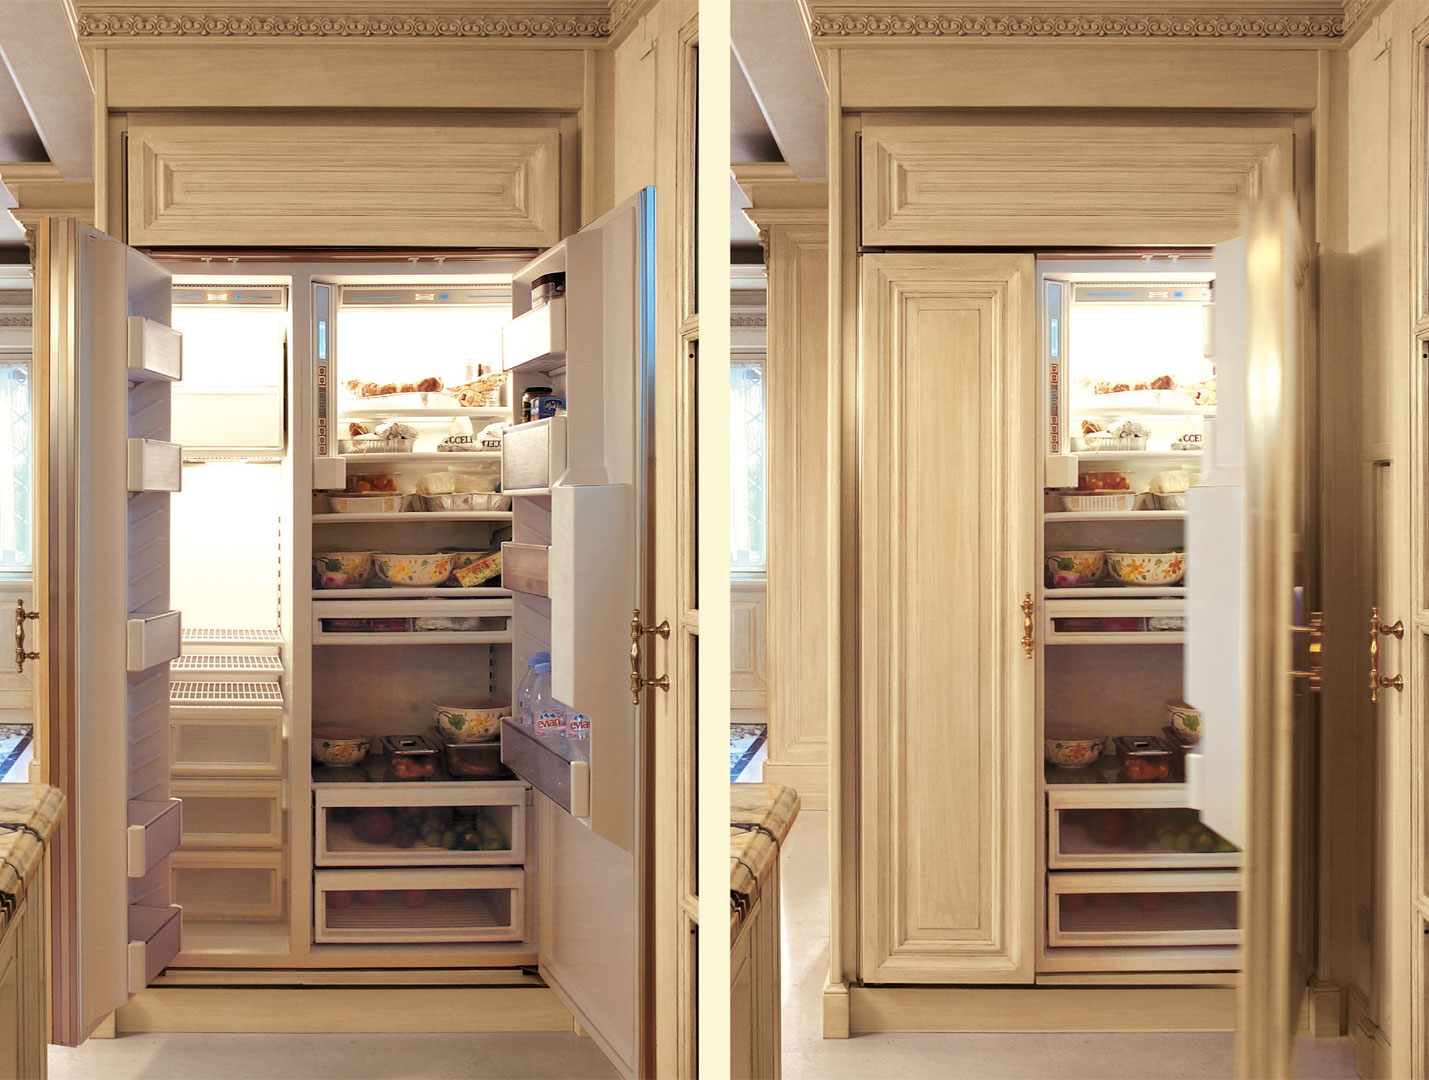 A Subzero fridge with doors that match all other kitchen modules